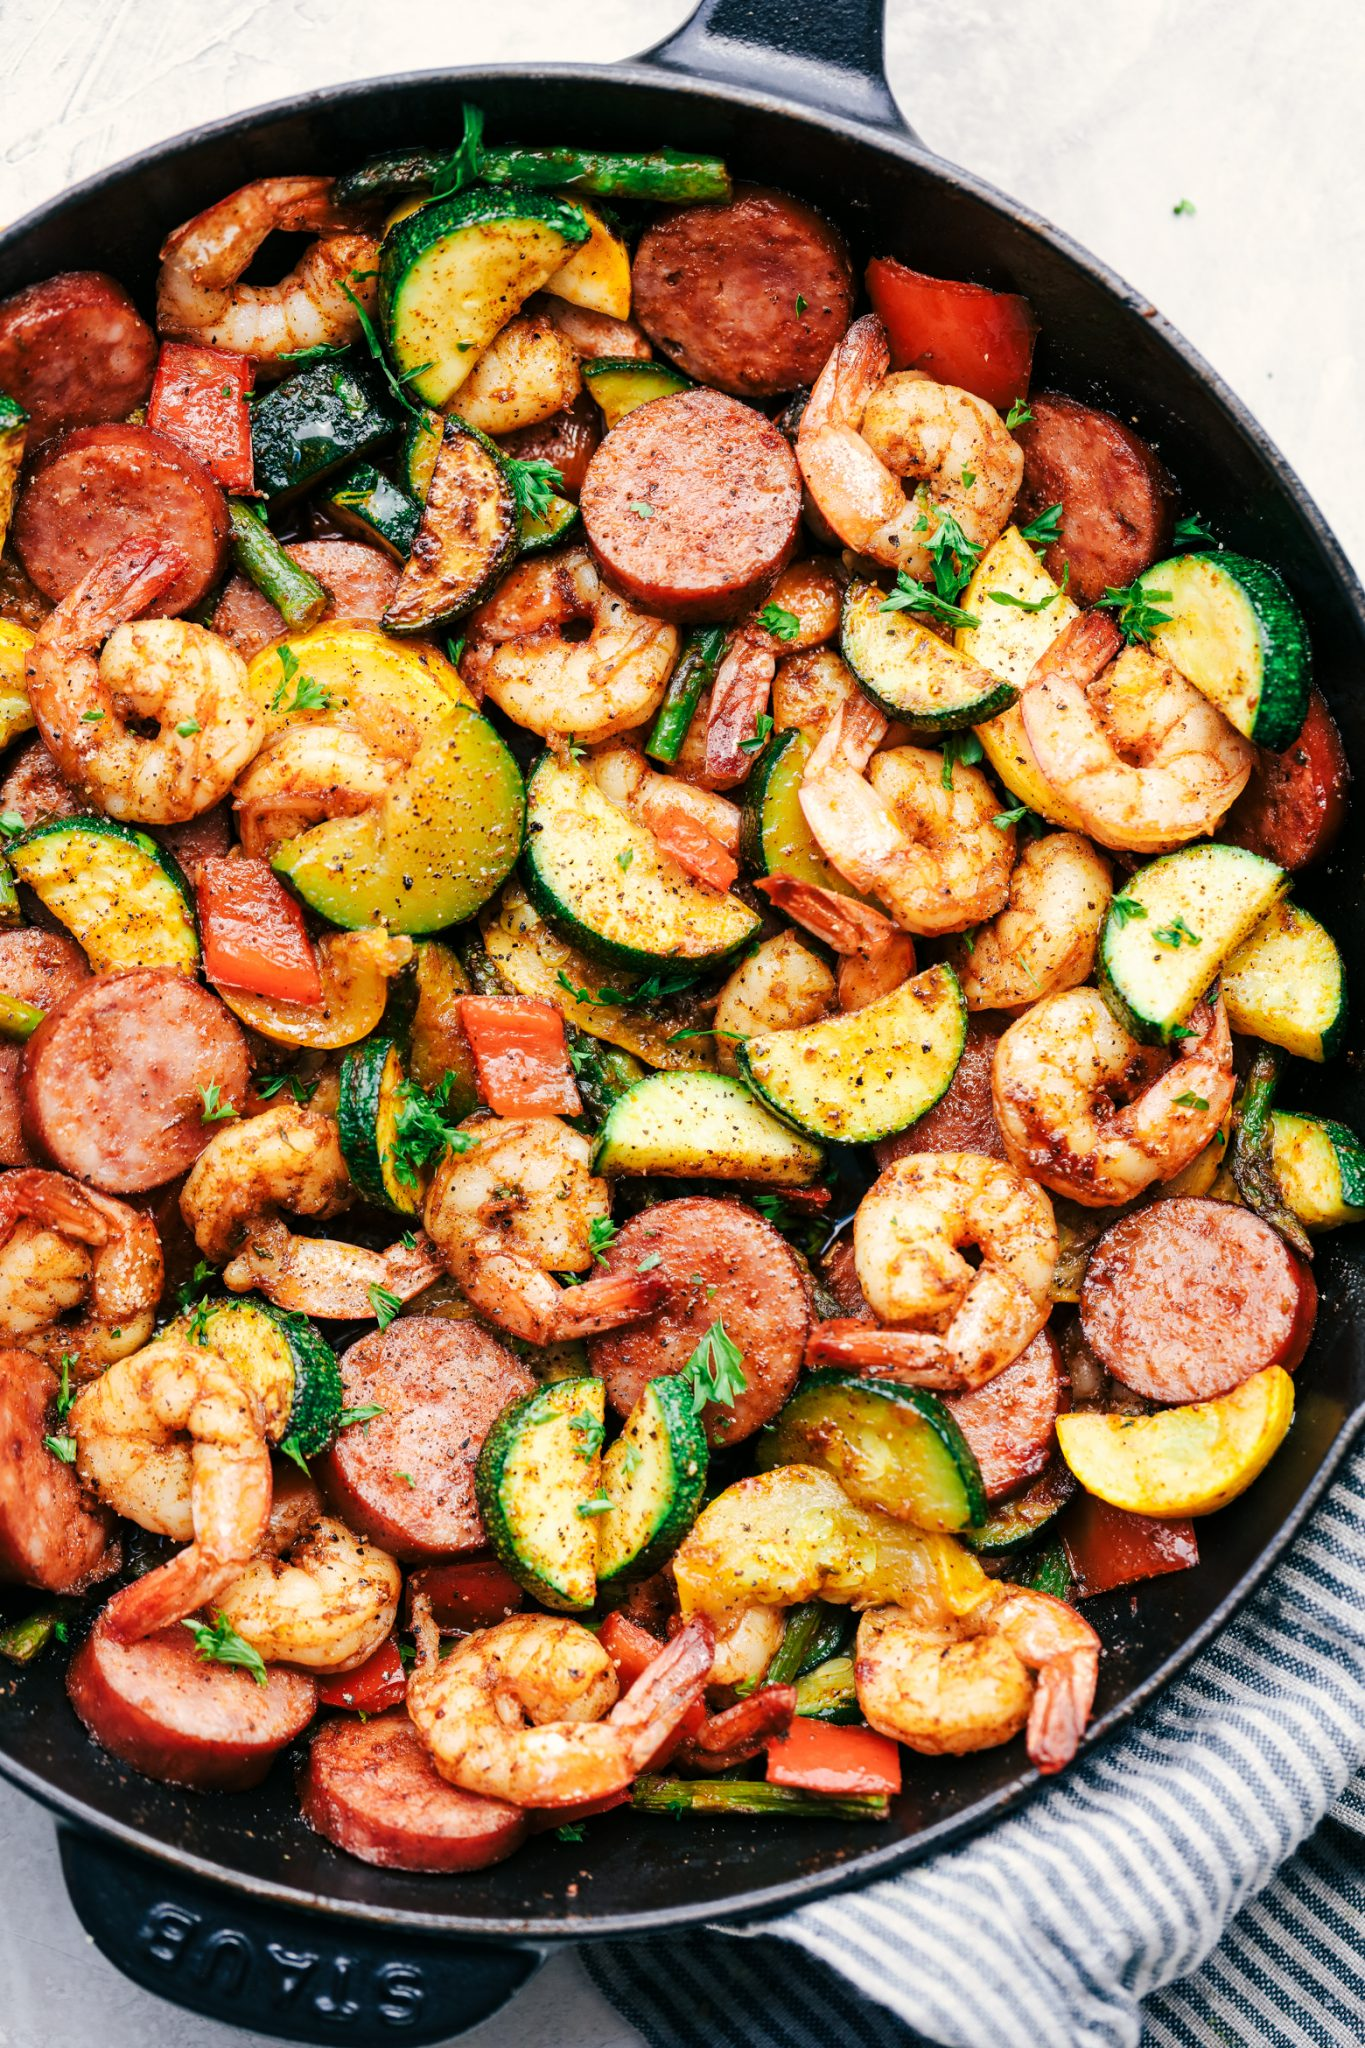 Back to School Healthy Lunches for Adults - Cajun Shrimp and Sausage Vegetable Skillet via The Recipe Critic | https://www.roseclearfield.com